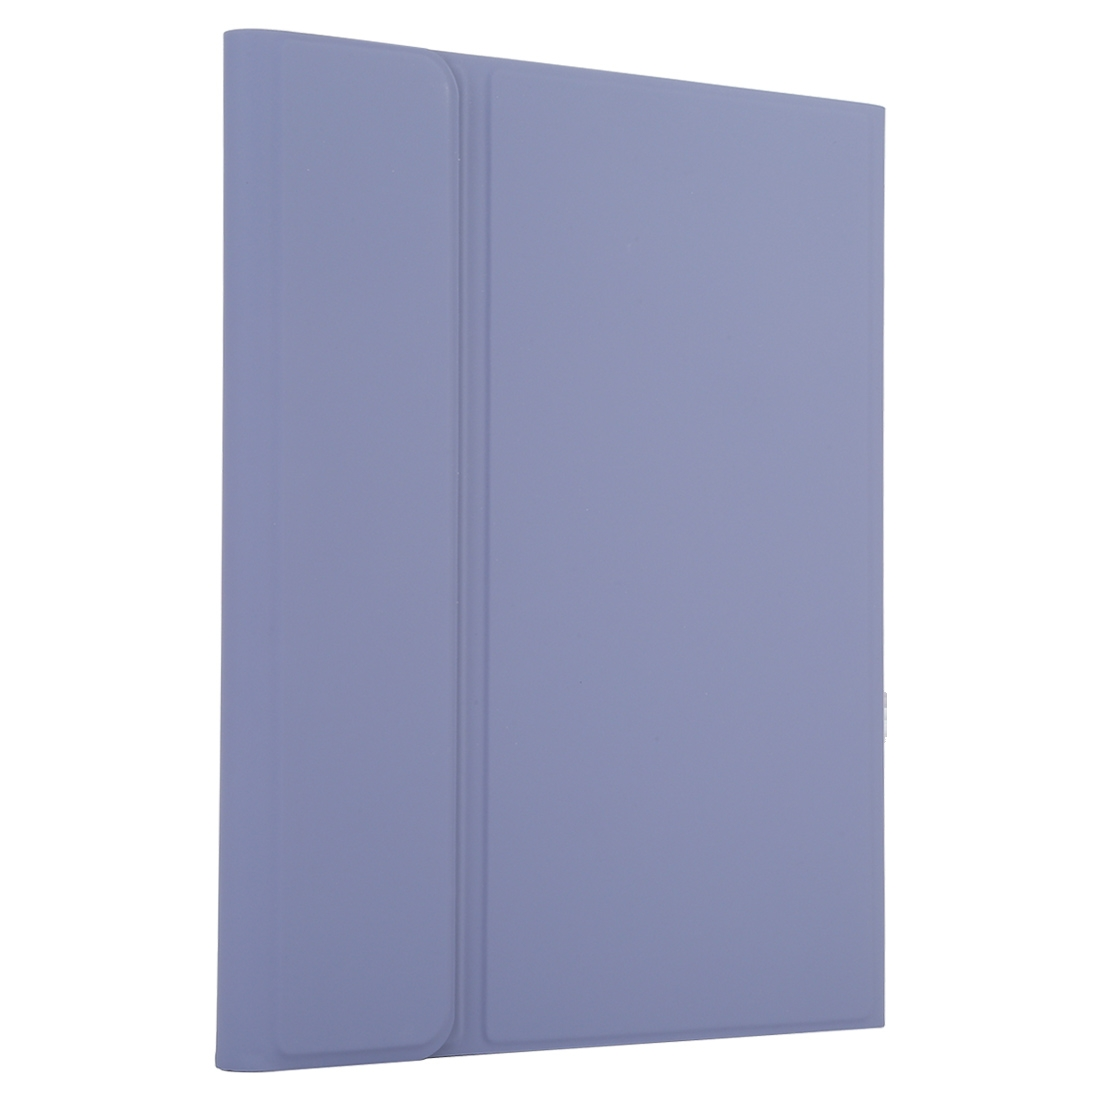 iPad Case With Keyboard & Bluetooth For iPad 10.2 Inch, Features Leather Case & Touchpad (Purple)